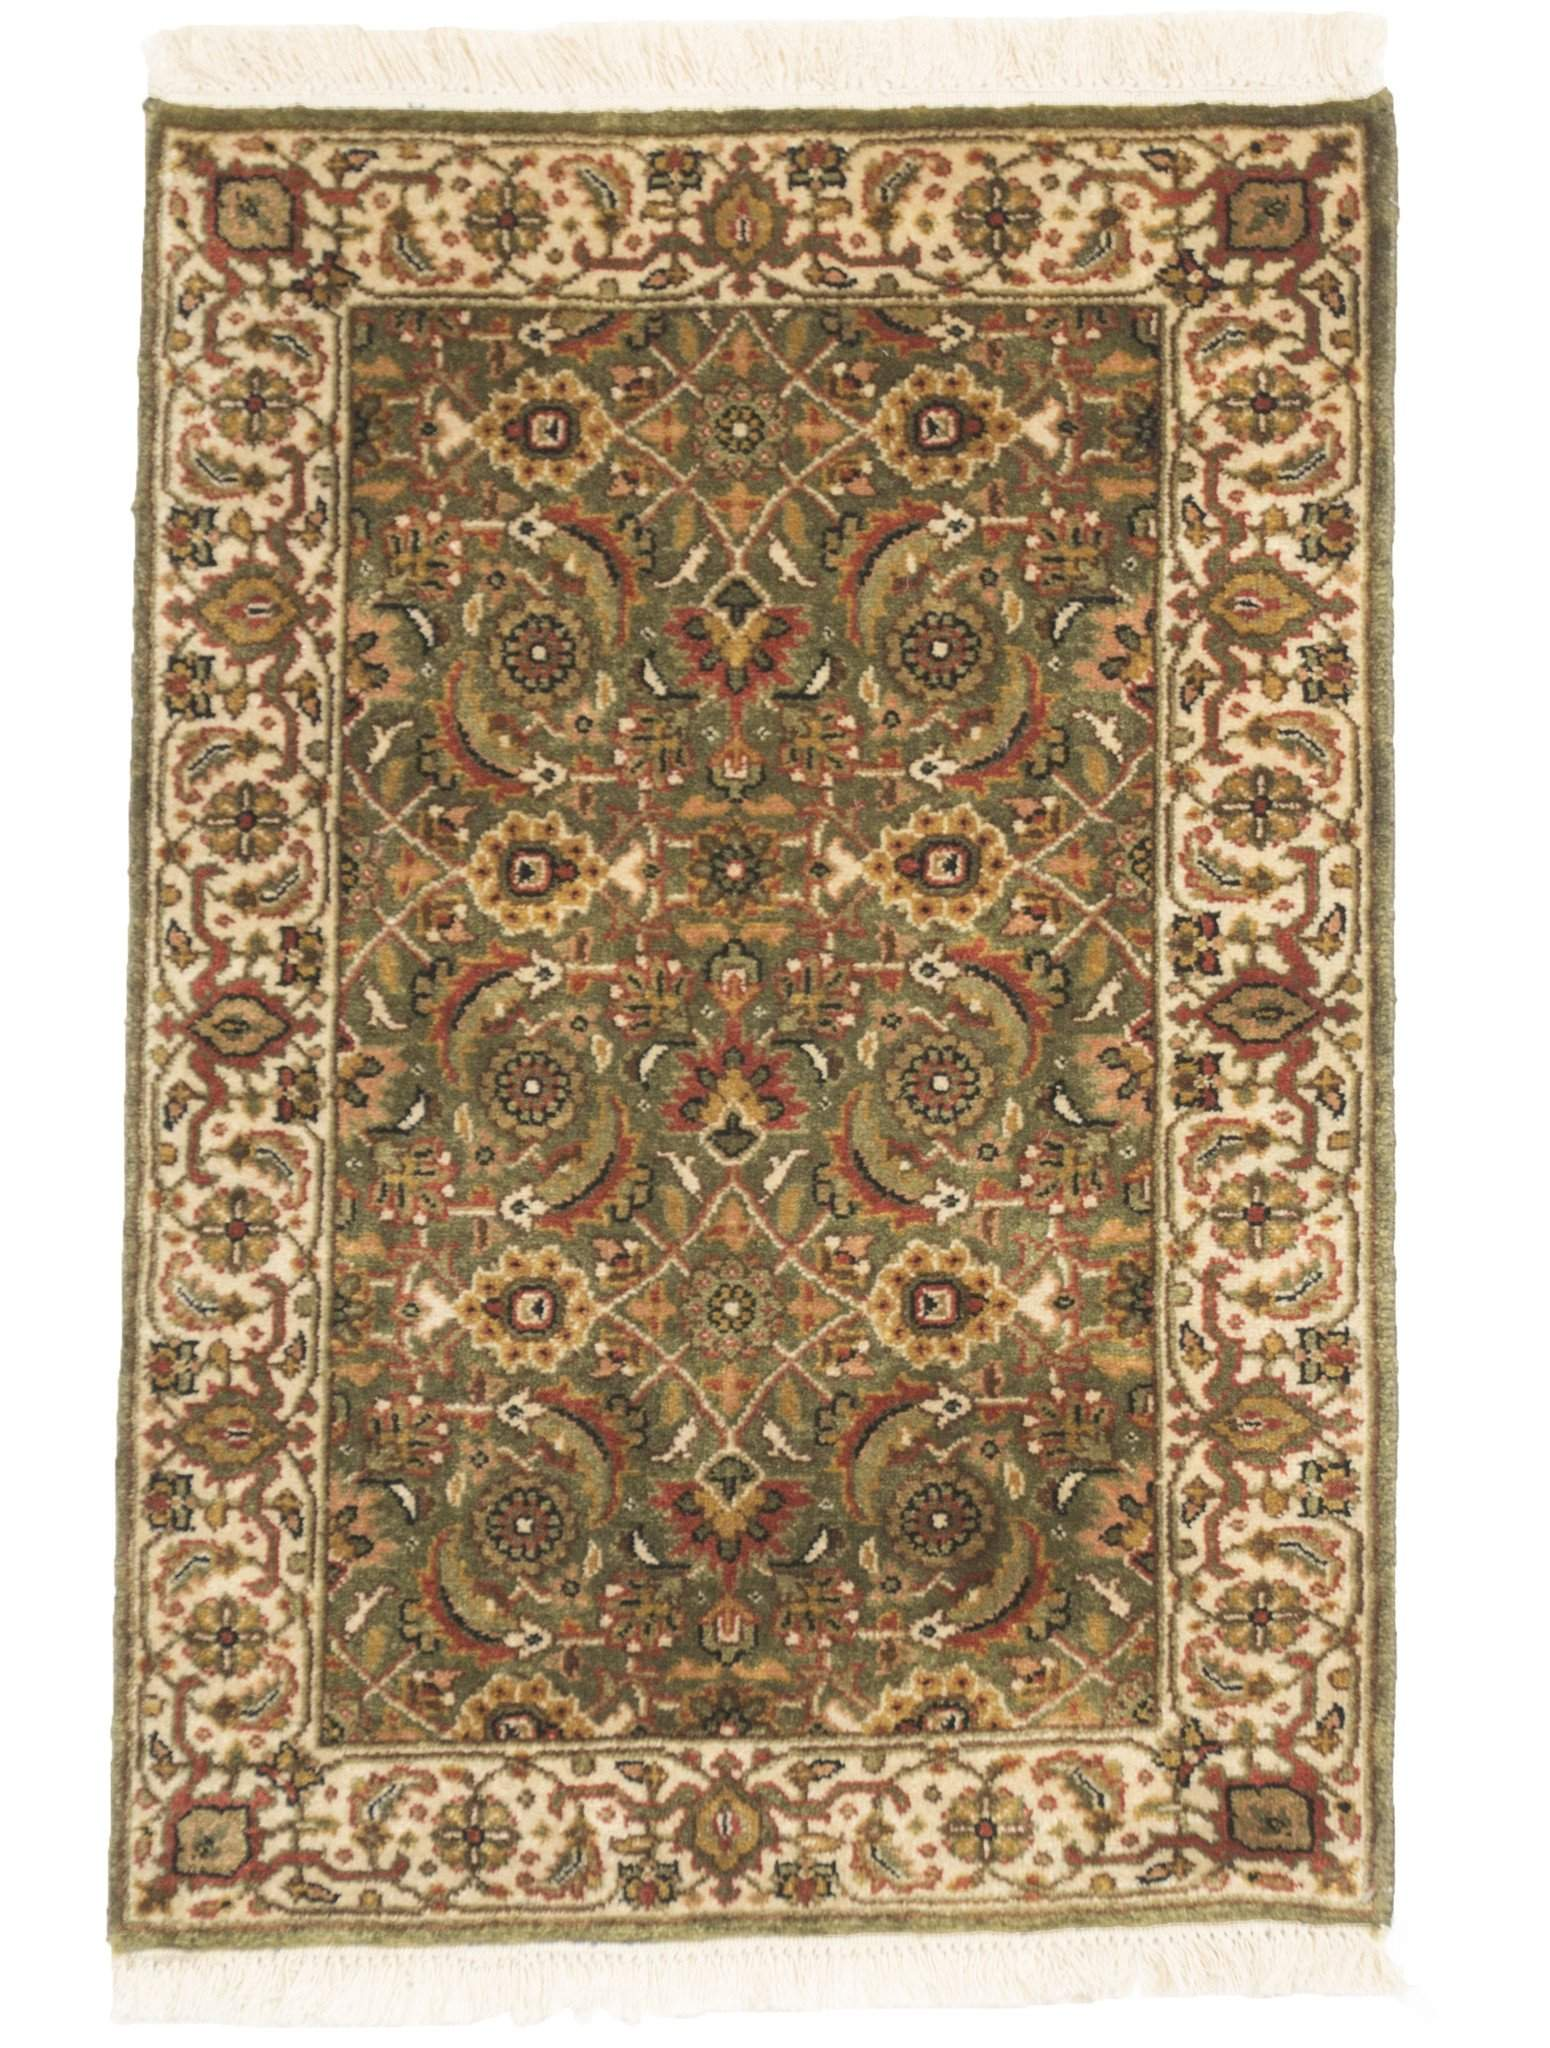 2' x 3' Herati Handknotted Traditional Wool Rug by Rug Shop and More-Area Rugs-Rug Shop and More